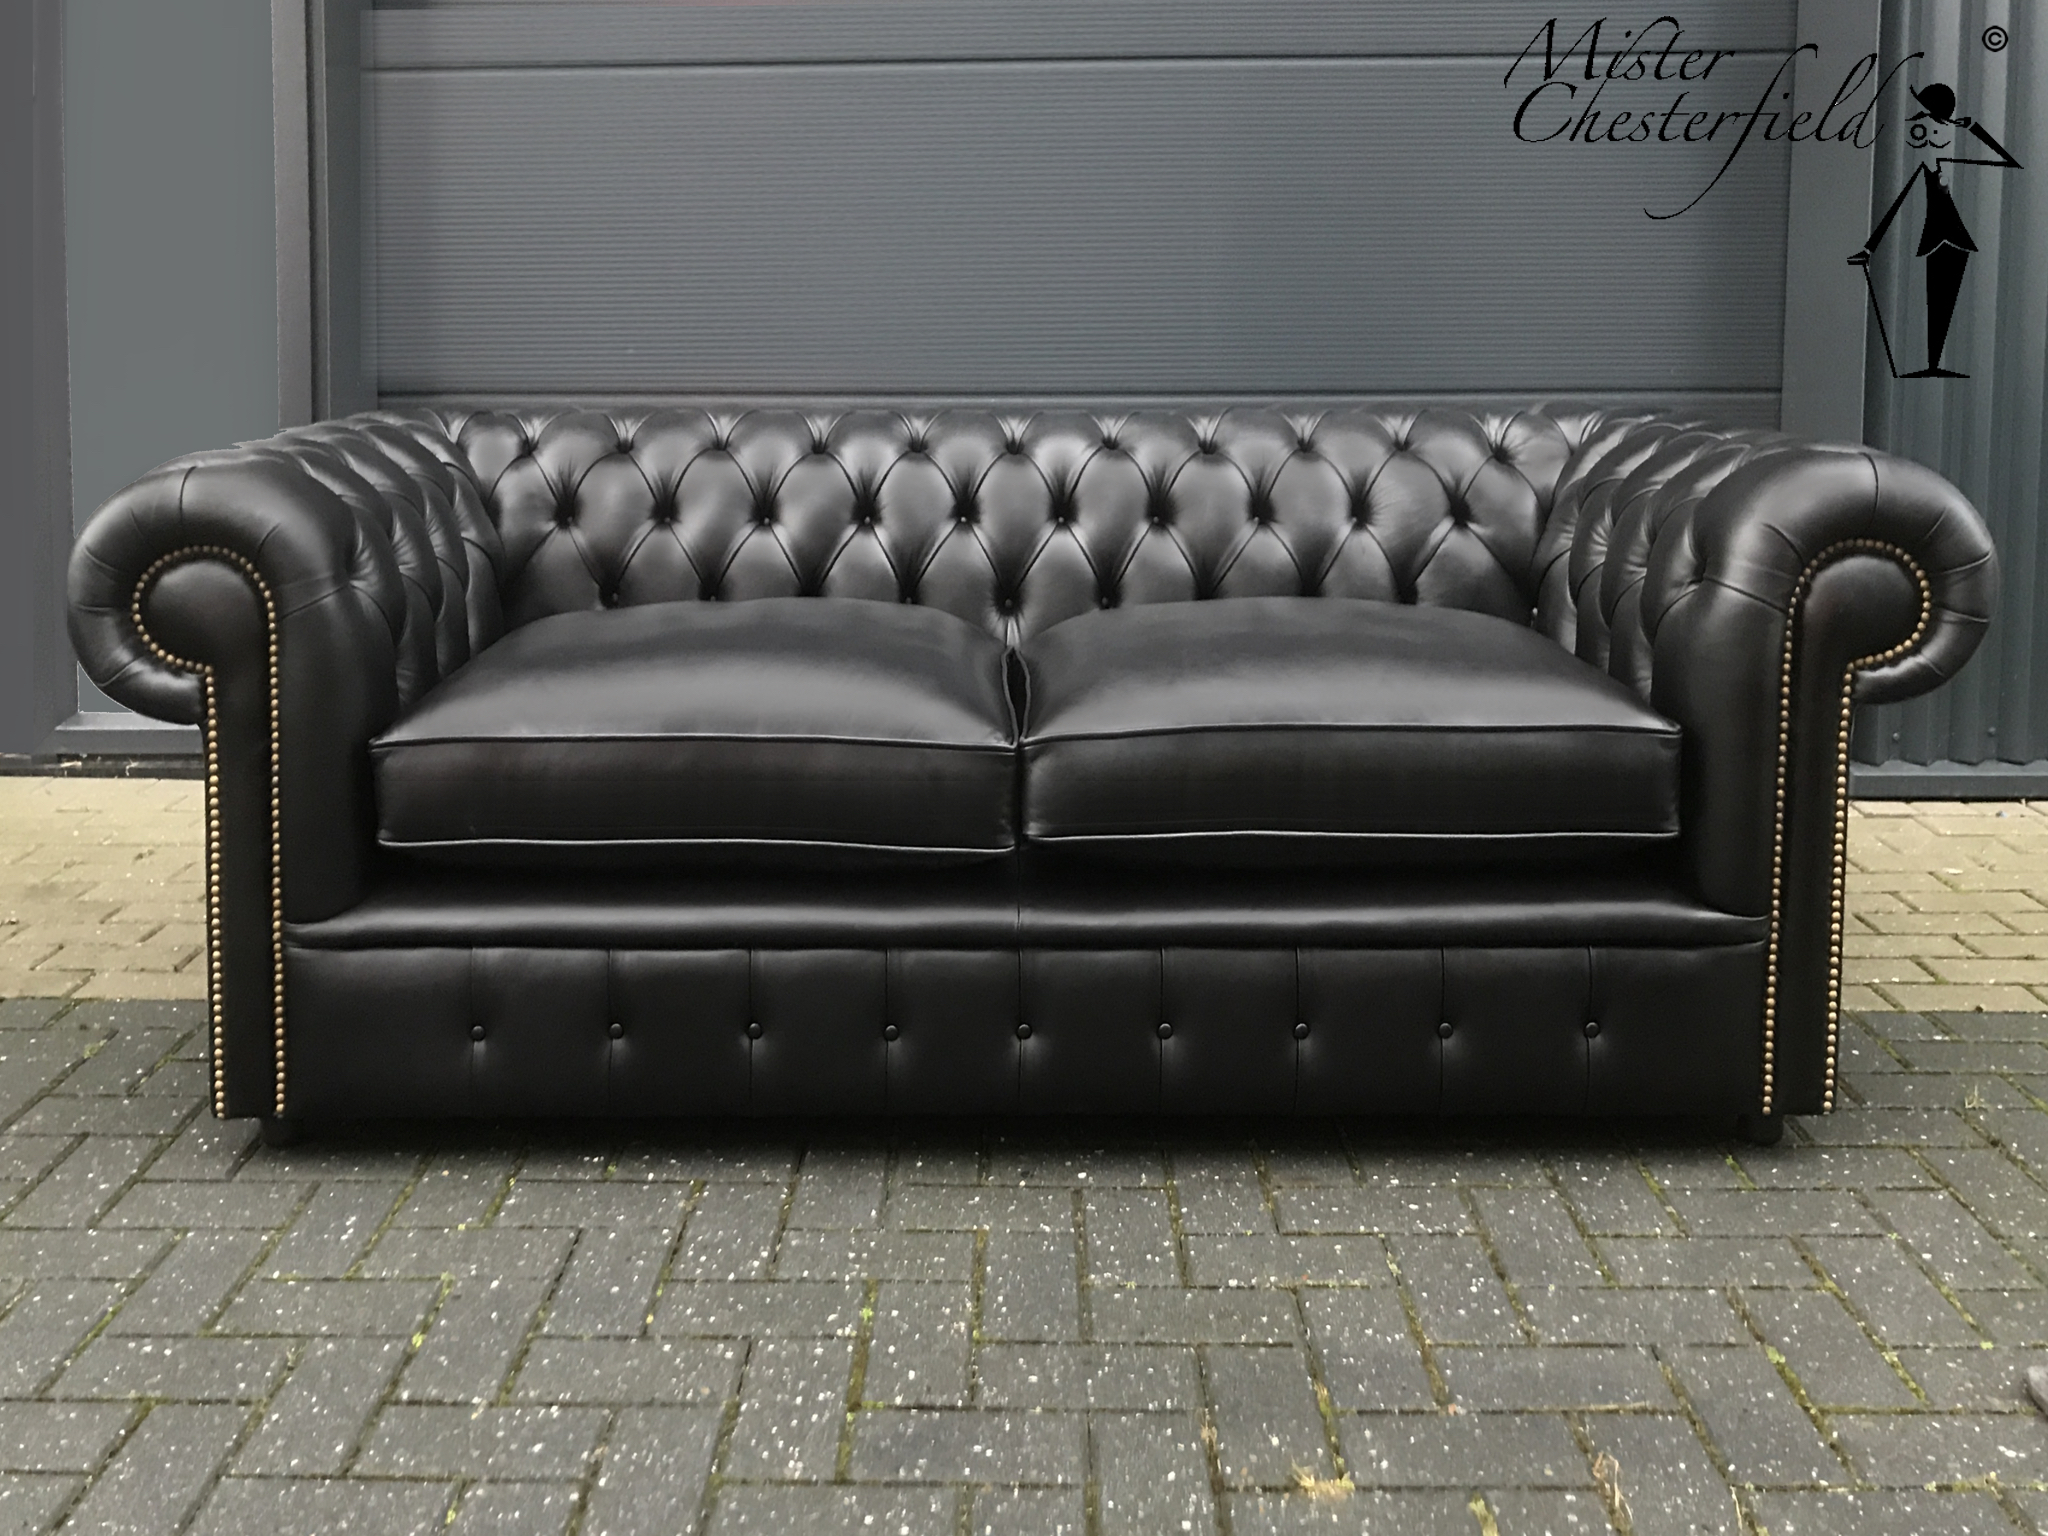 chesterfield meubels gouda